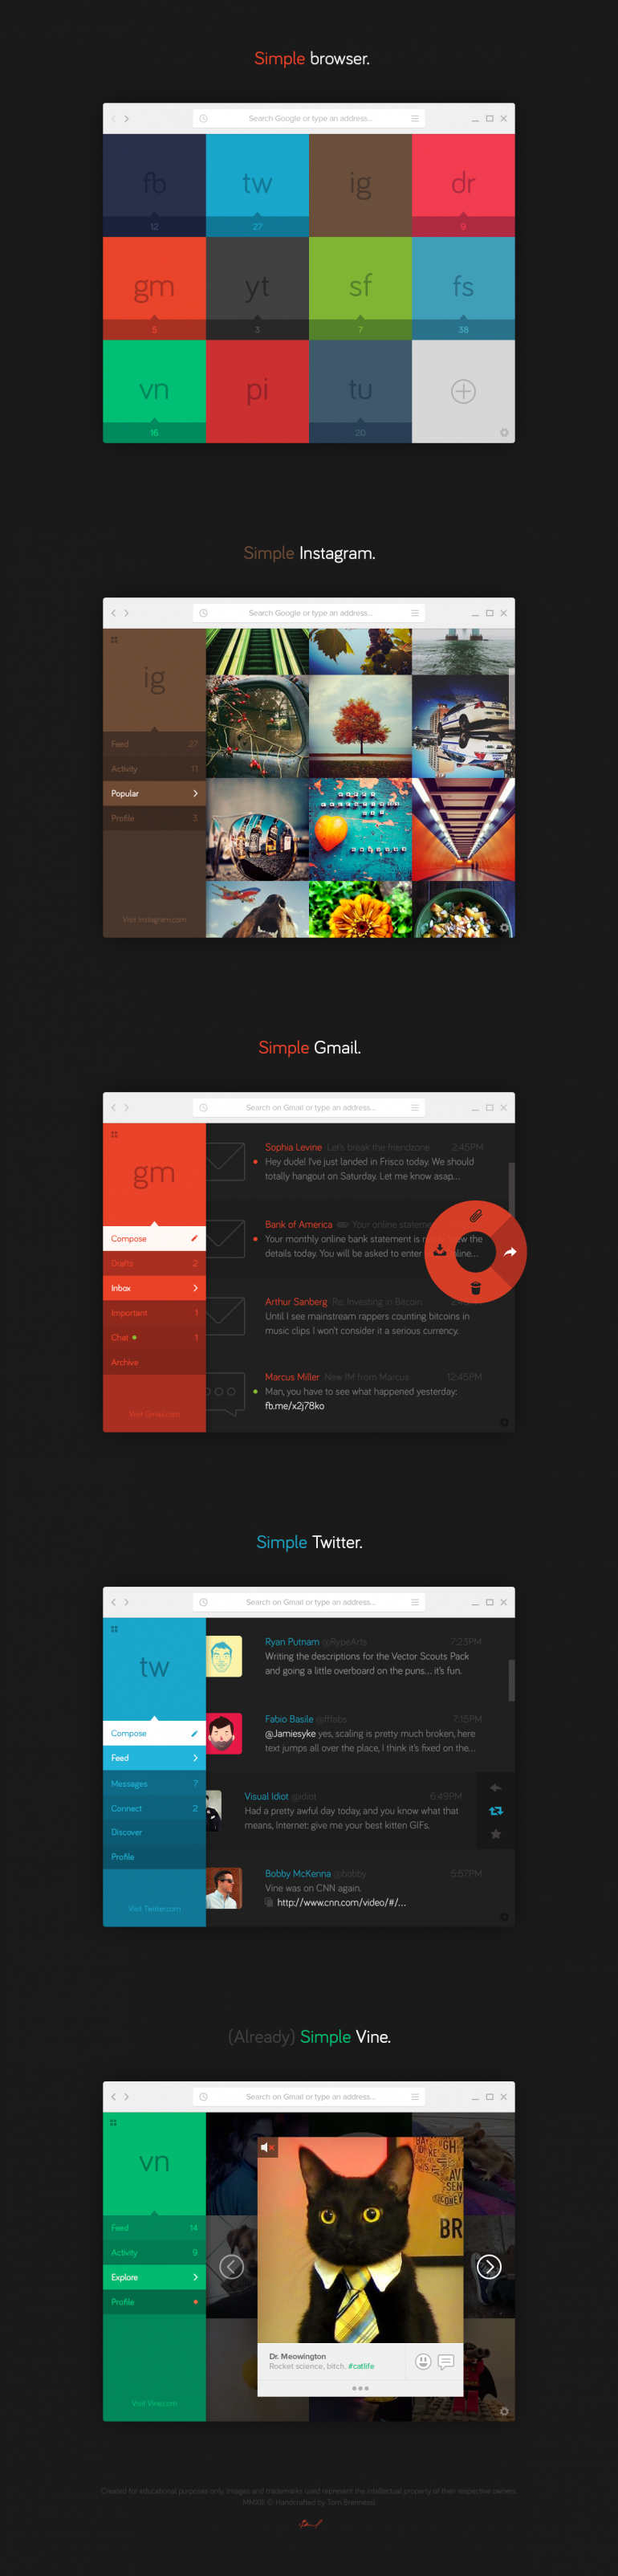 Simple Browser (Concept) by Tom Brennessl